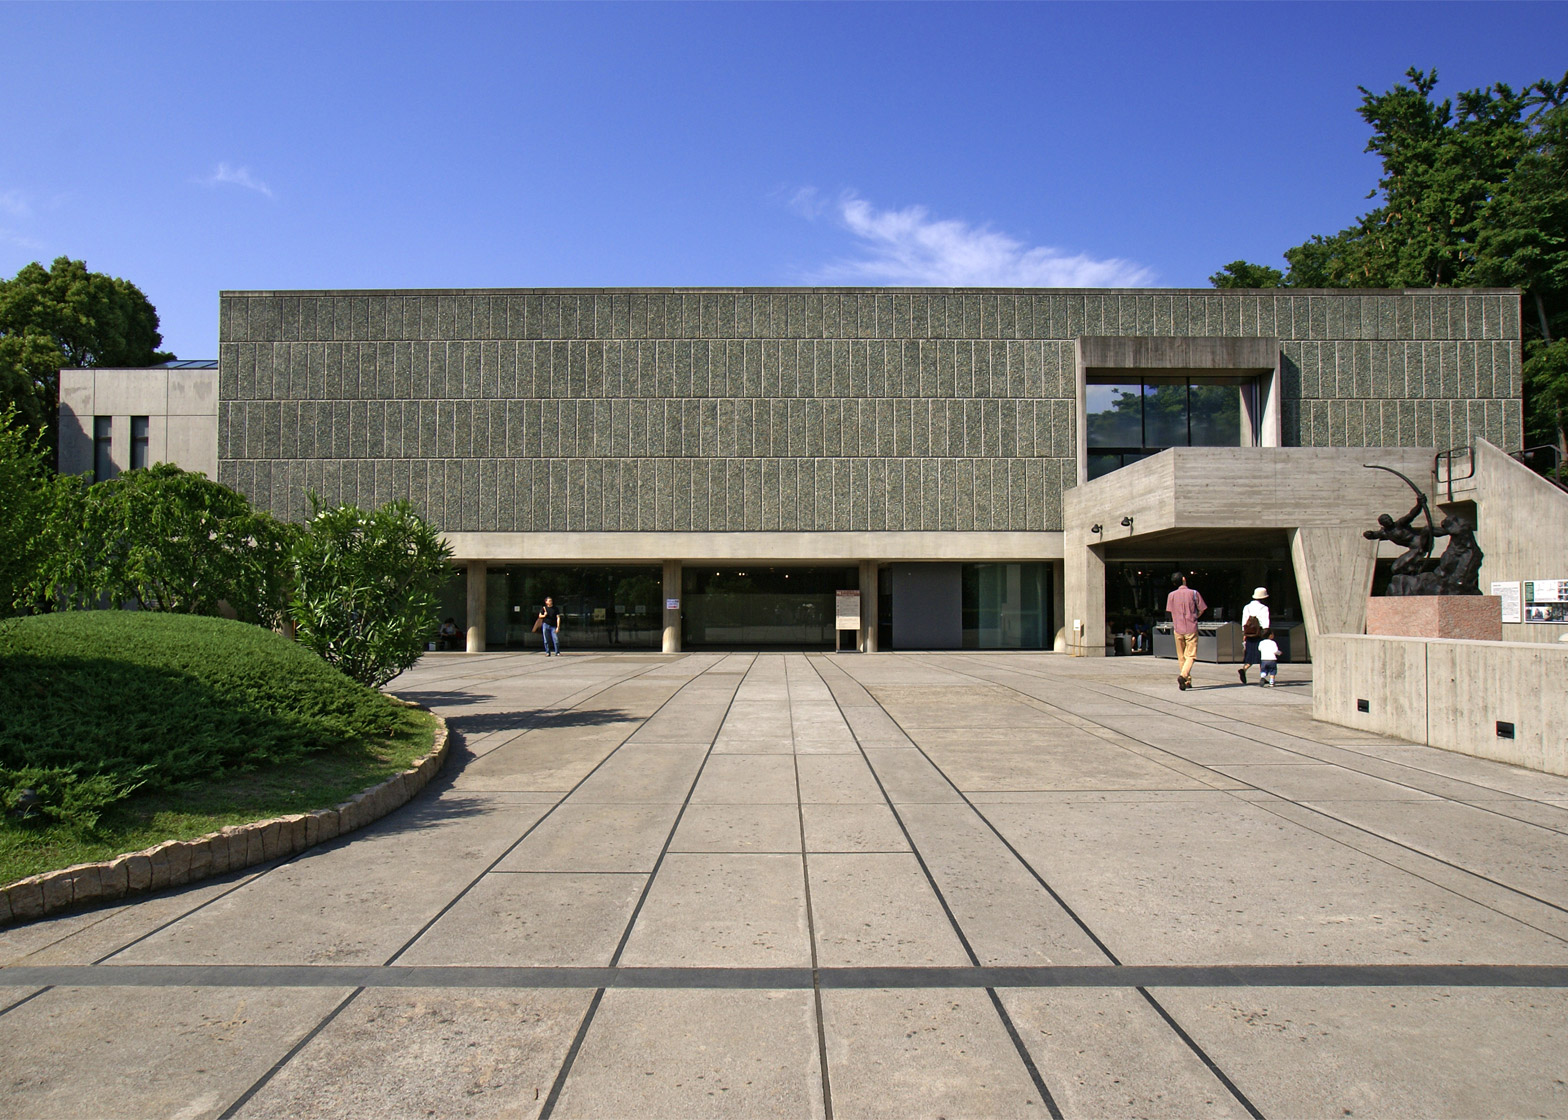 Musée National des Beaux-Arts de l'Occident, Taito-Ku, Tokyo, Japan, 1955